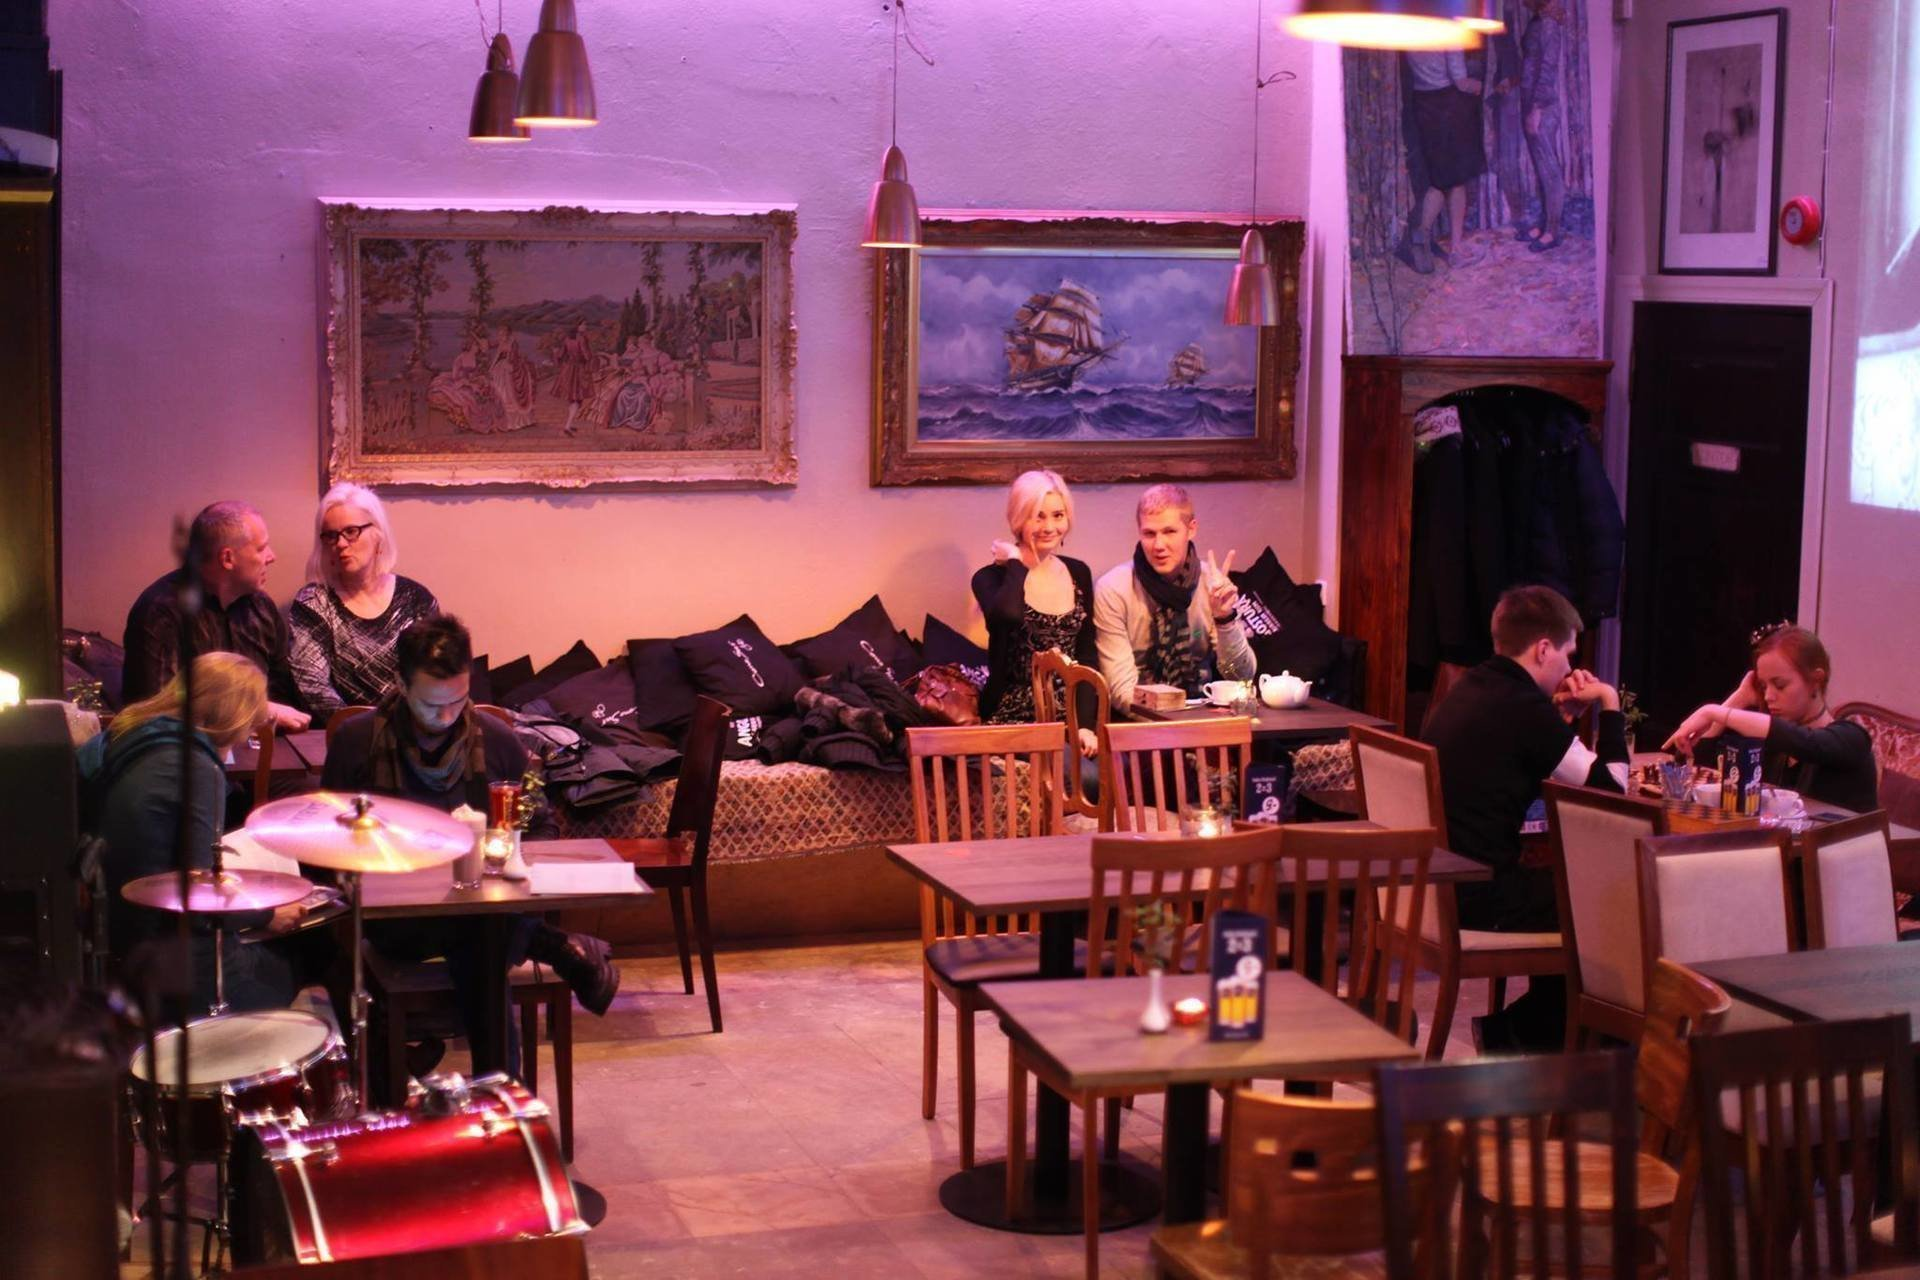 Art Cafe Tallinn: A Work-Friendly Place in Tallinn